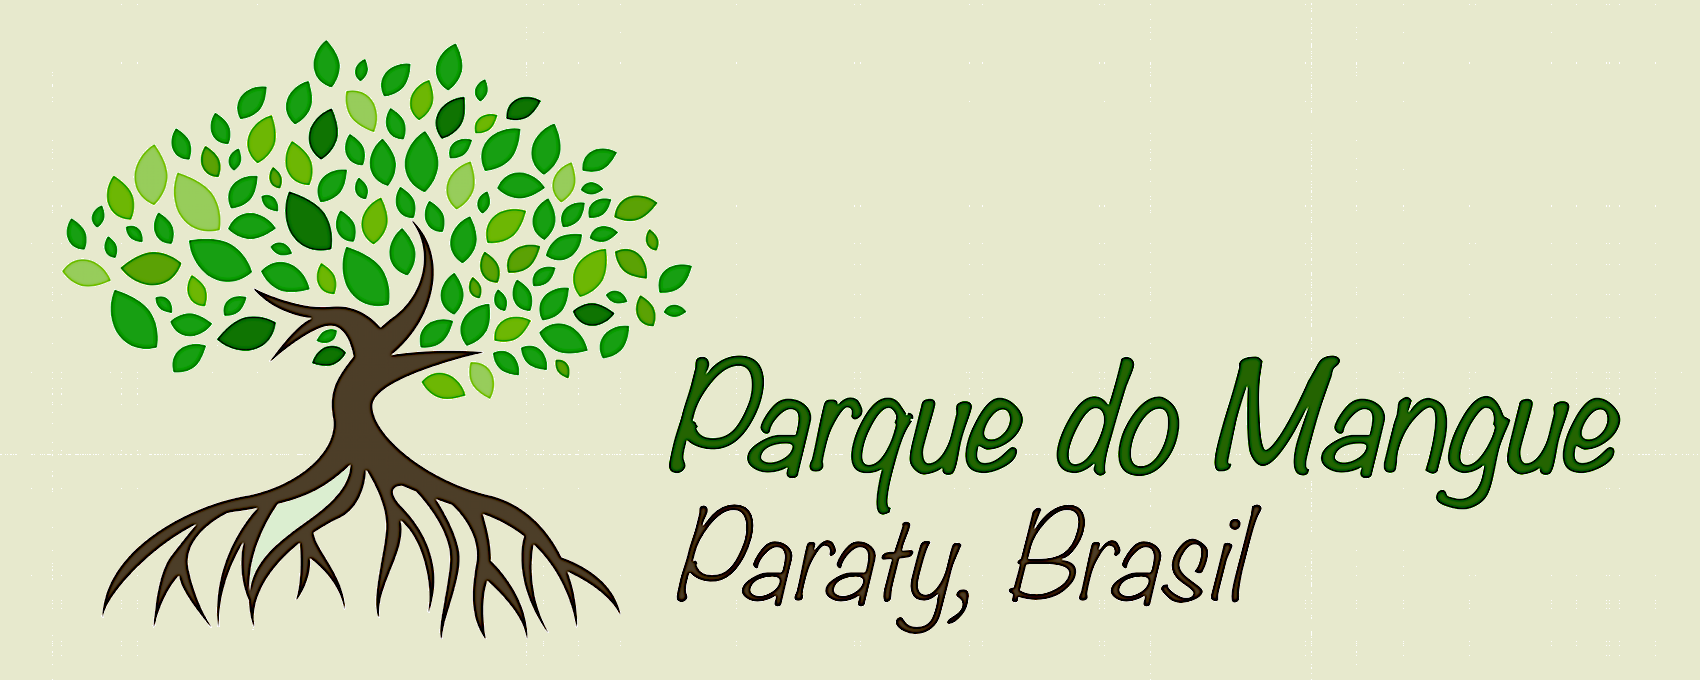 logo Parque do Mangue fundoWEB